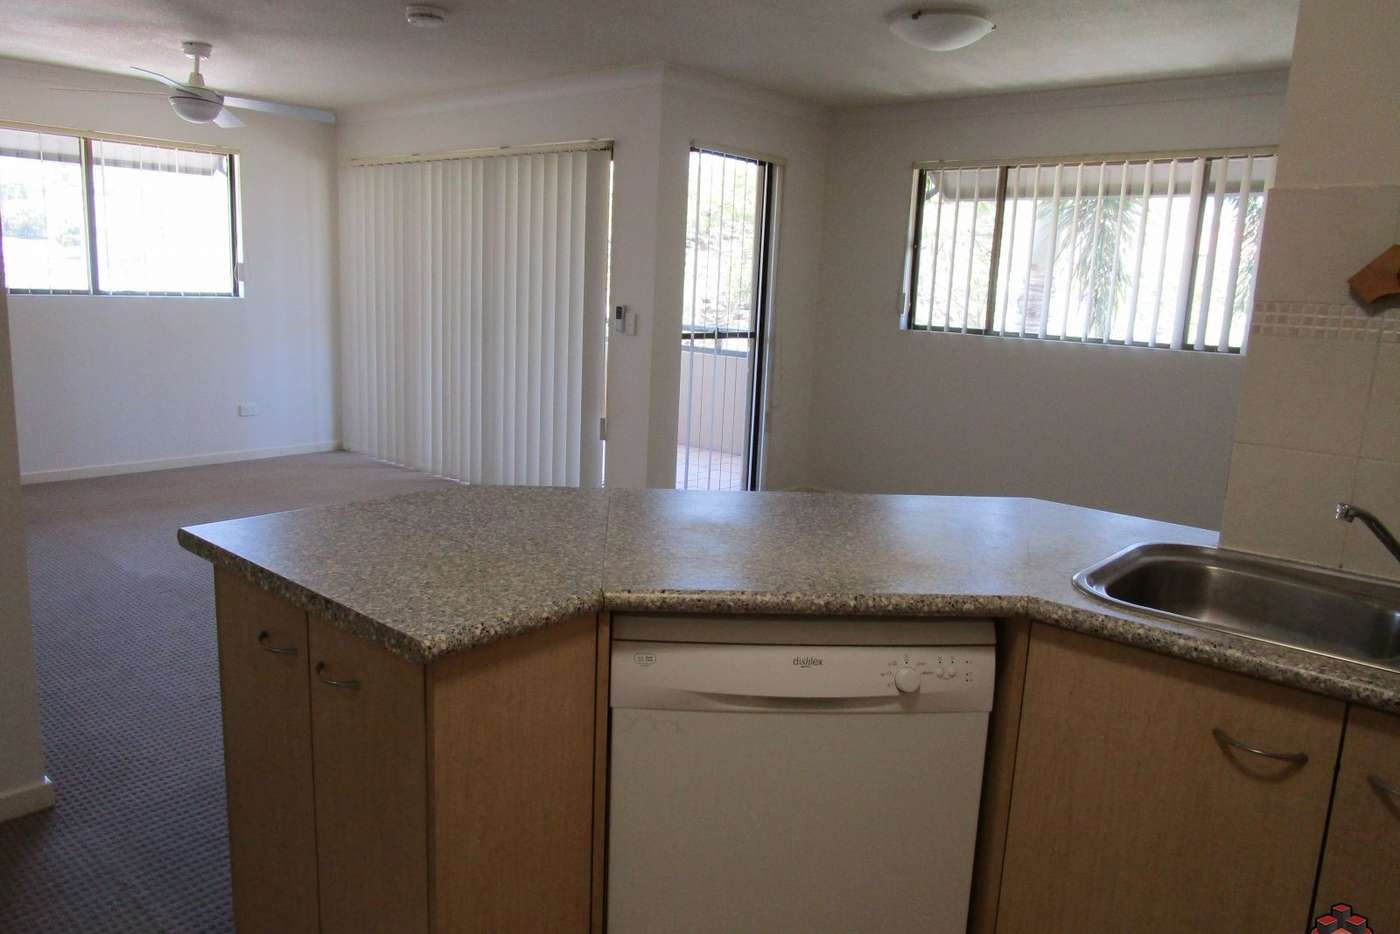 Sixth view of Homely unit listing, ID:3871902/53 7/53 Stapylton St, Coolangatta QLD 4225